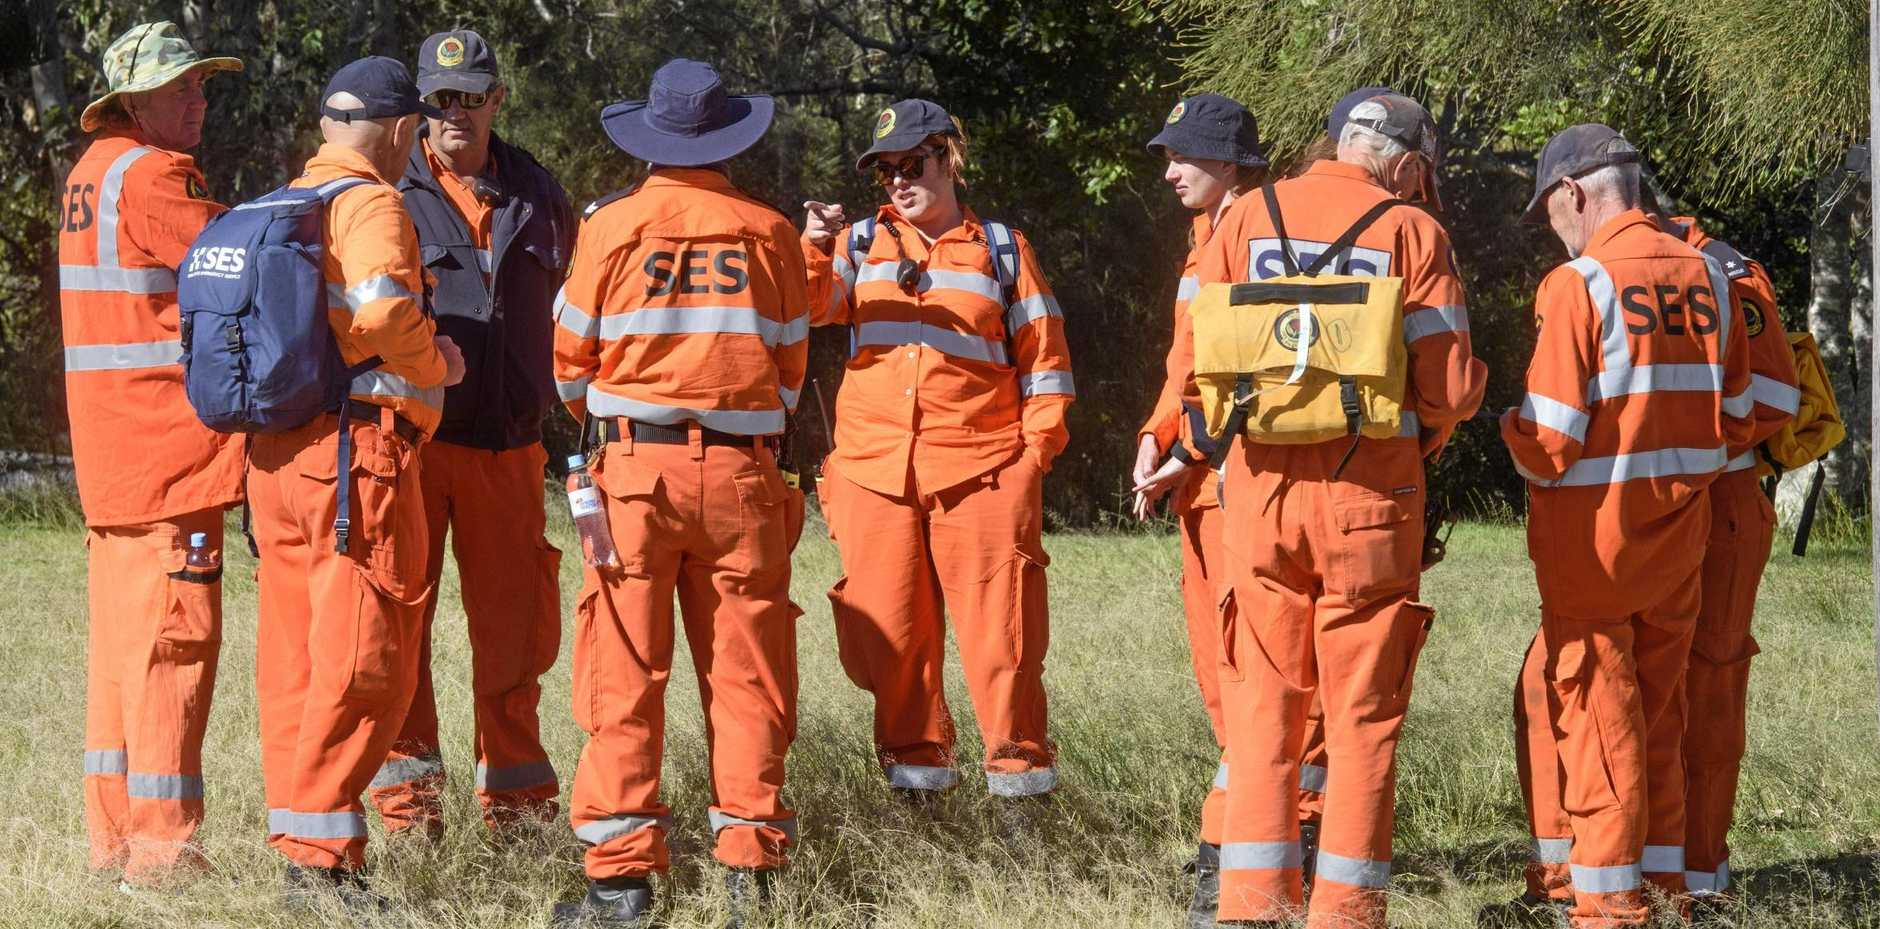 Police and SES volunteers joined forces to search the area around Sandon for a missing fisherman.